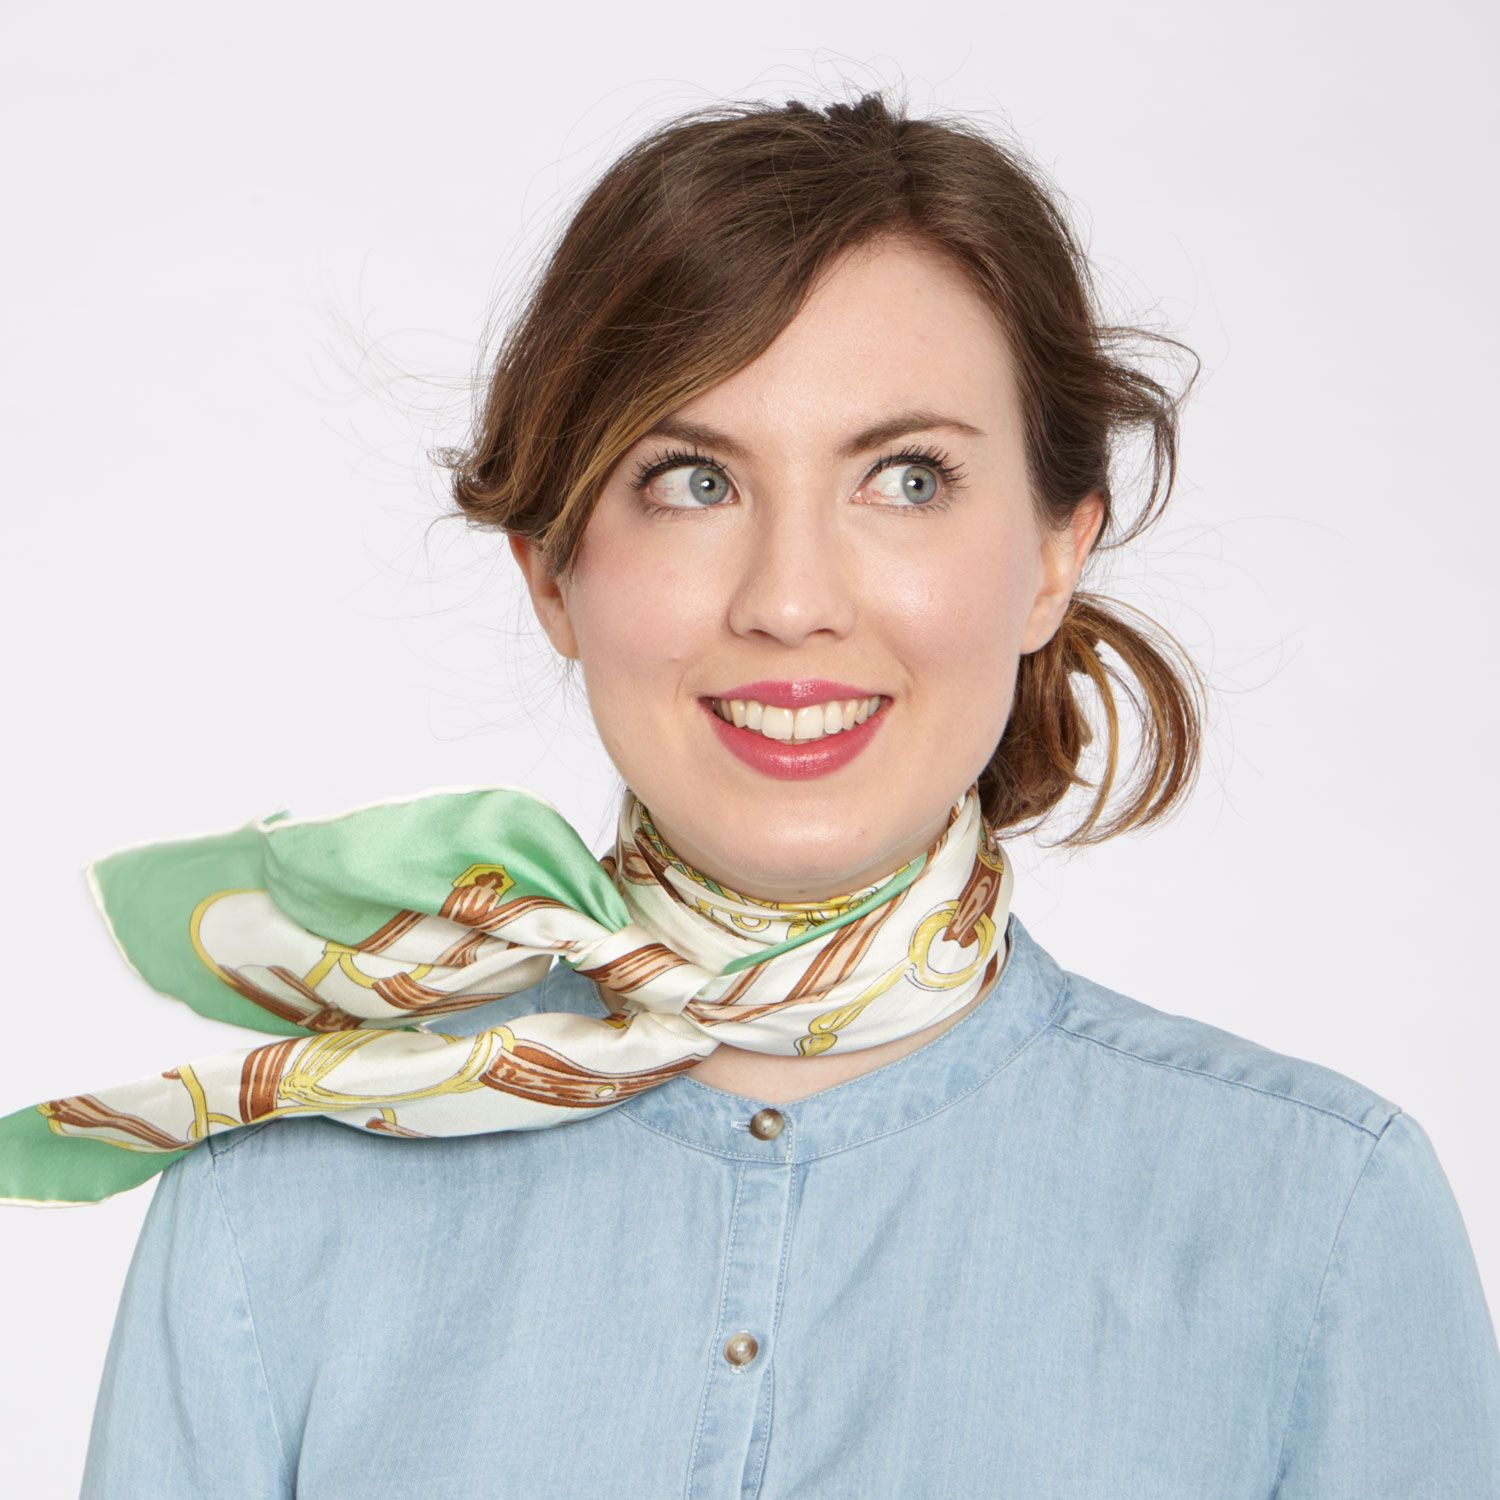 Le Meilleur How To Tie A Silk Scarf En 2018 To Sew Or Thrift Ce Mois Ci